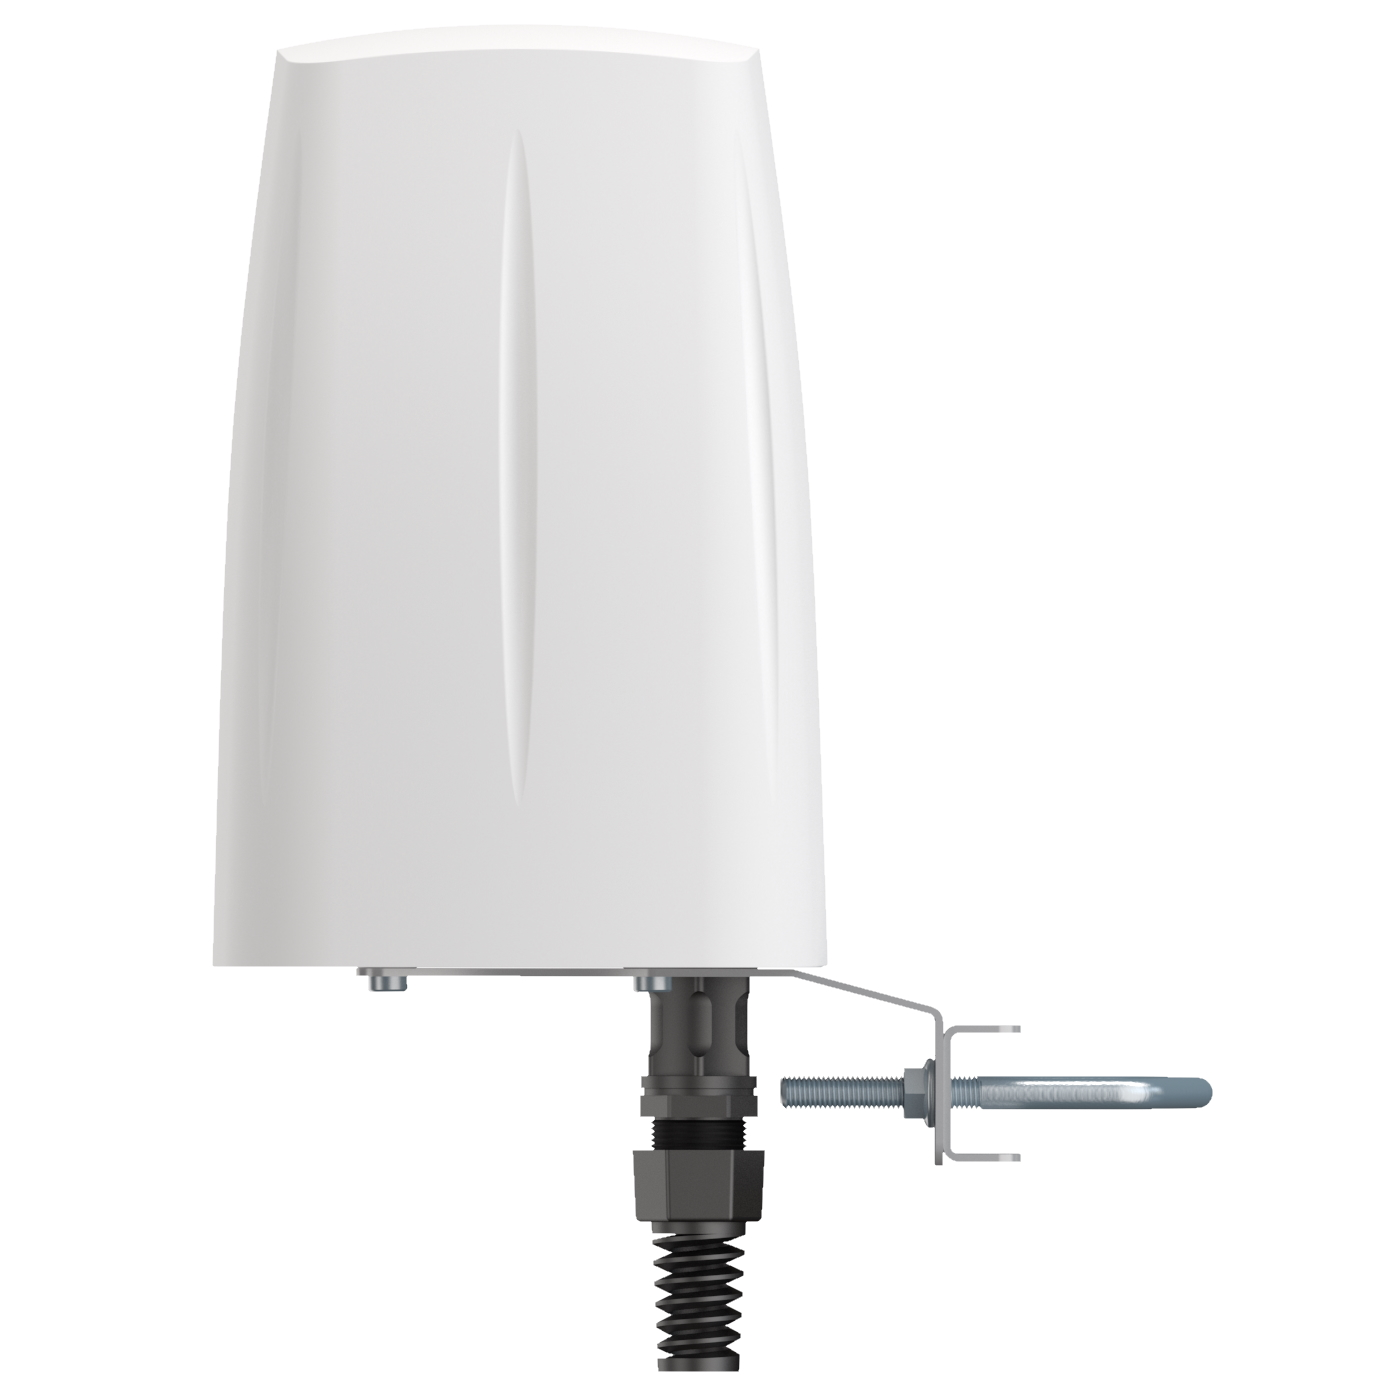 QuSpot for RUT240/RUT230 Antenna LTE + Wi-Fi